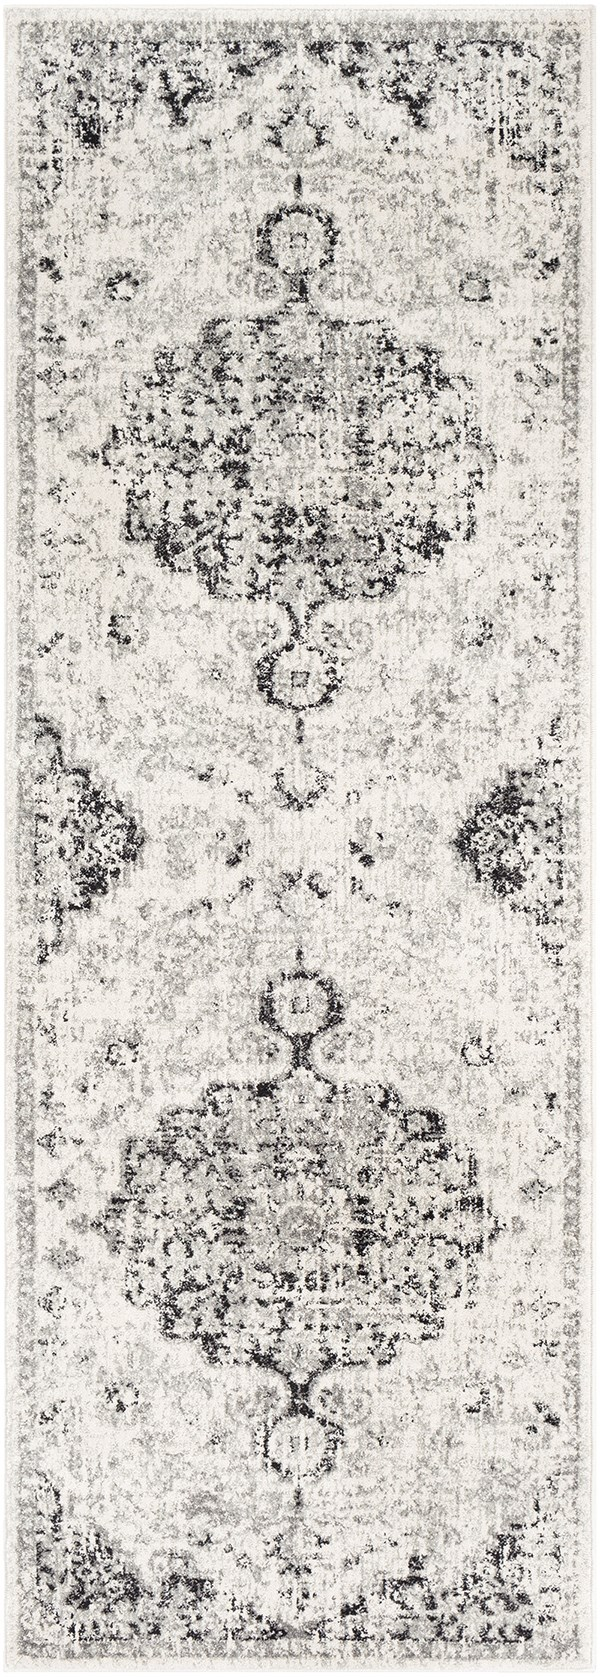 Beige, Light Gray, Charcoal Vintage / Overdyed Area Rug